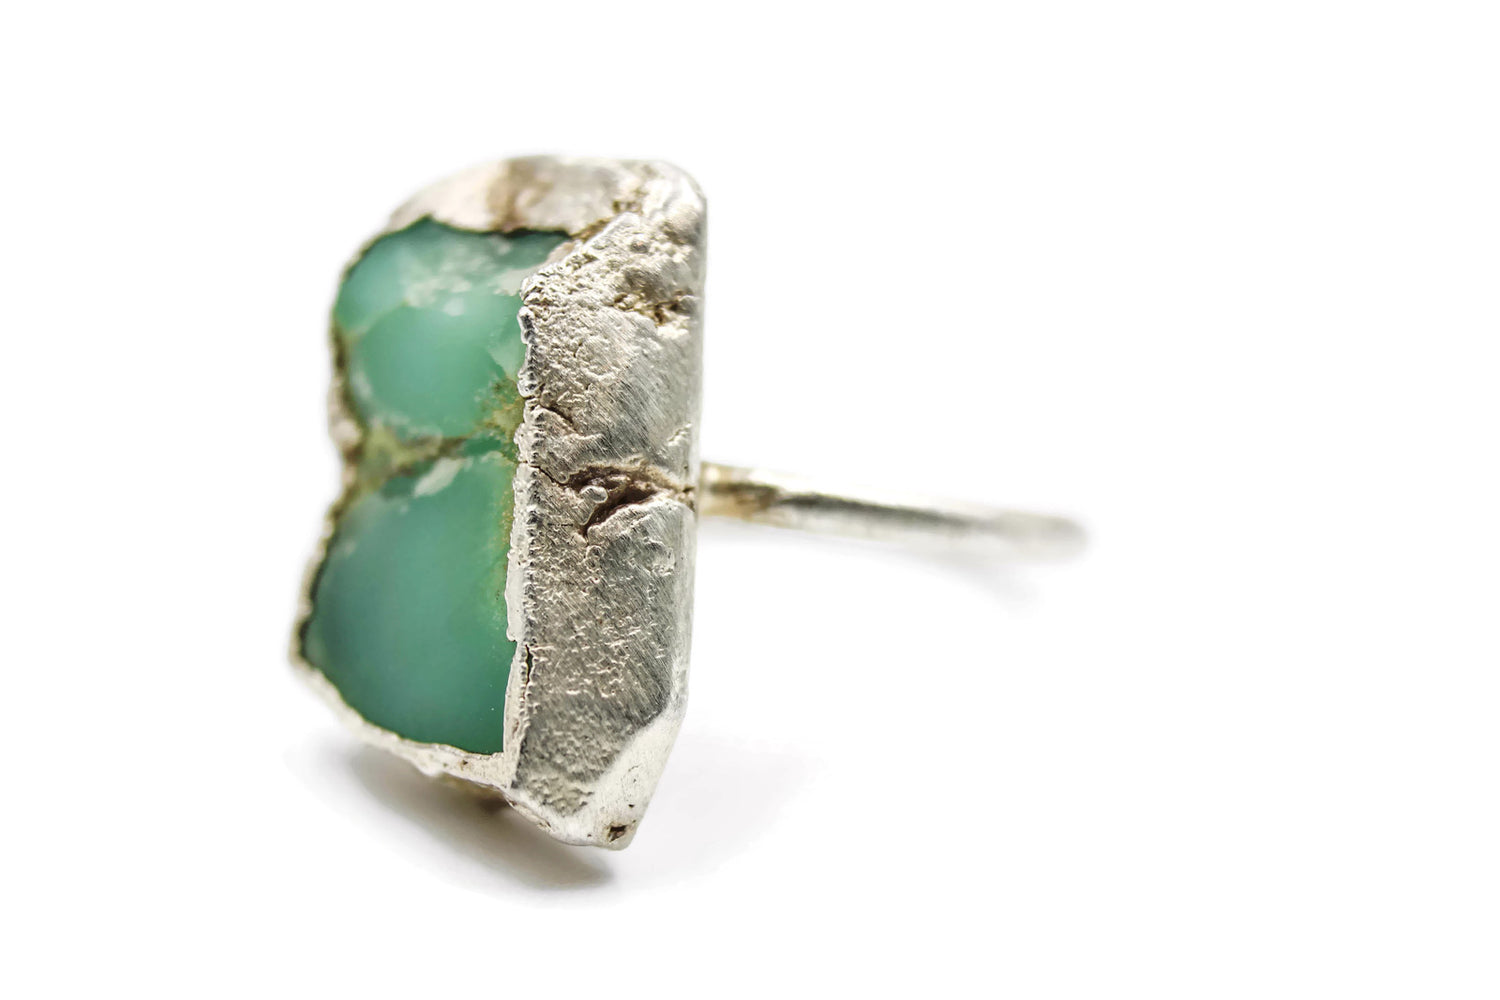 chrysoprase raw gemstone statement ring the fox and stone bohemian jewelry